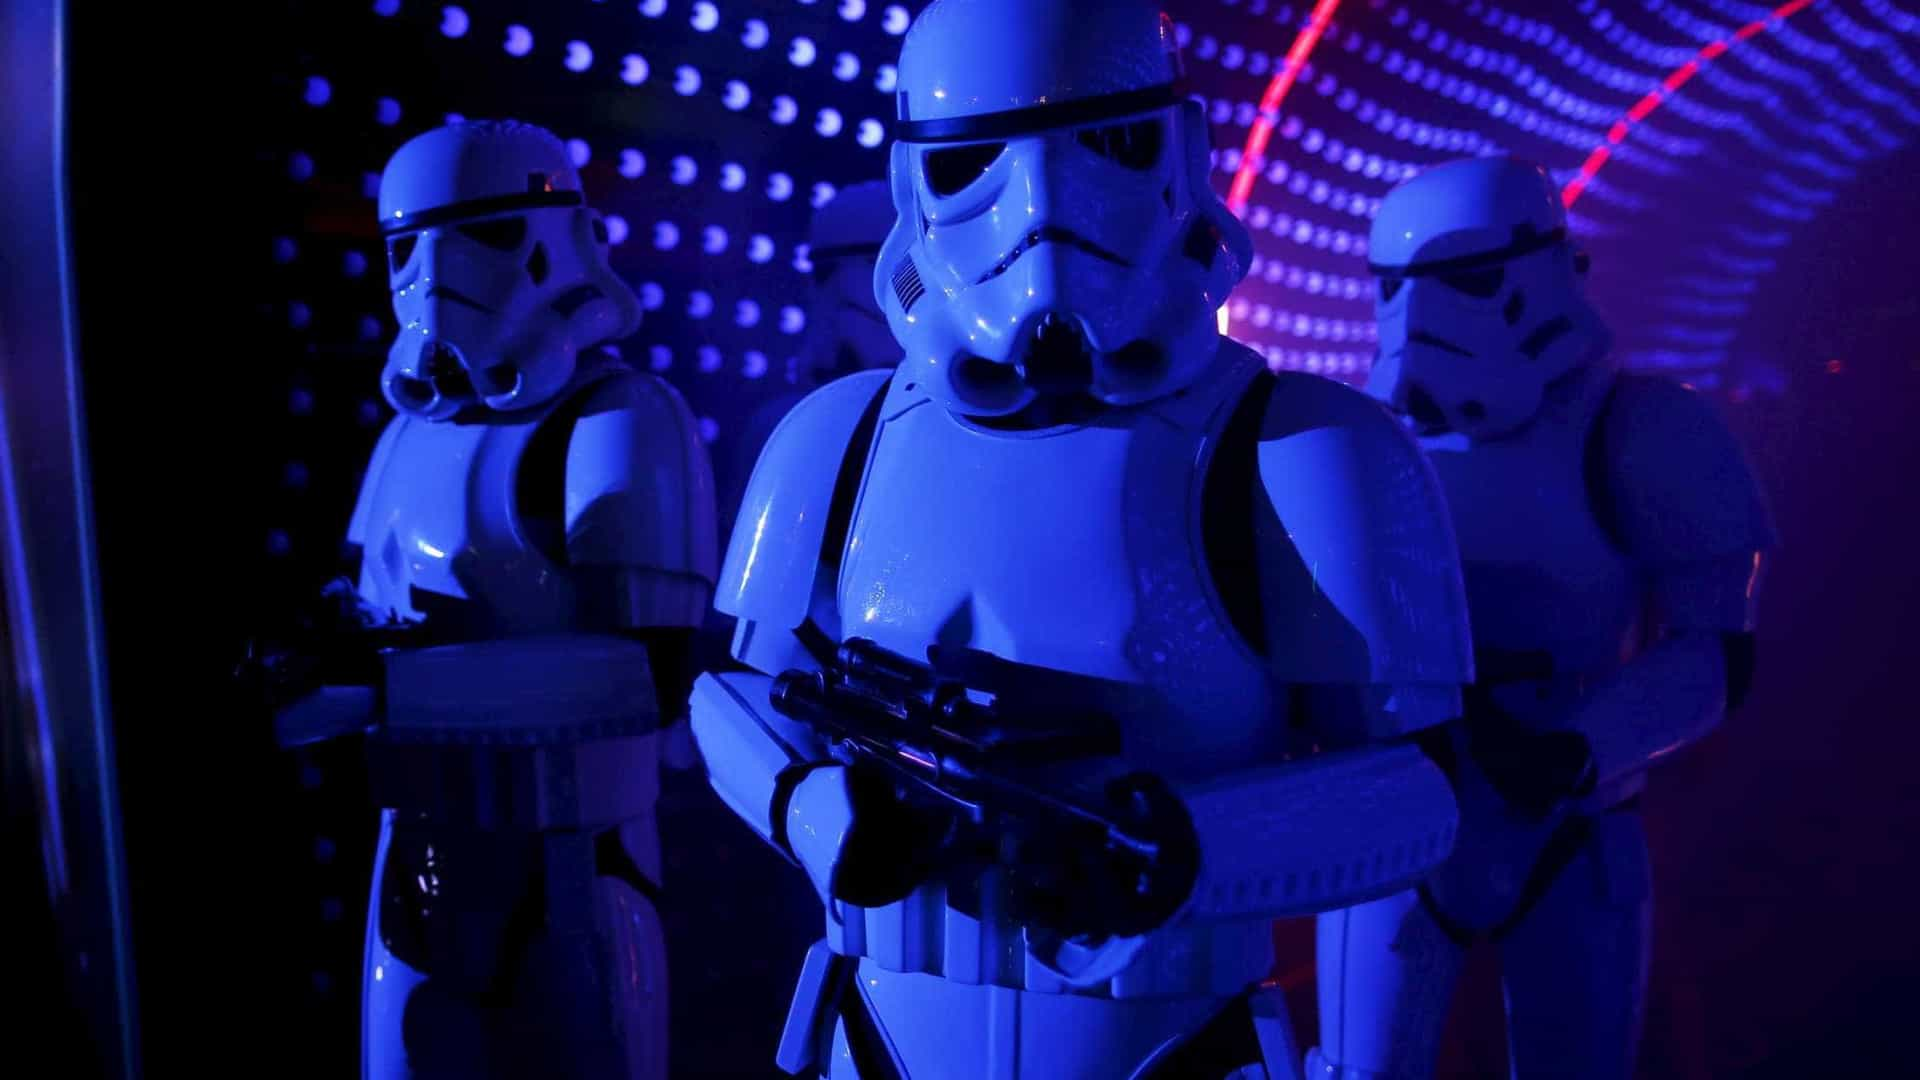 Disney anuncia parque do Star Wars para 2019